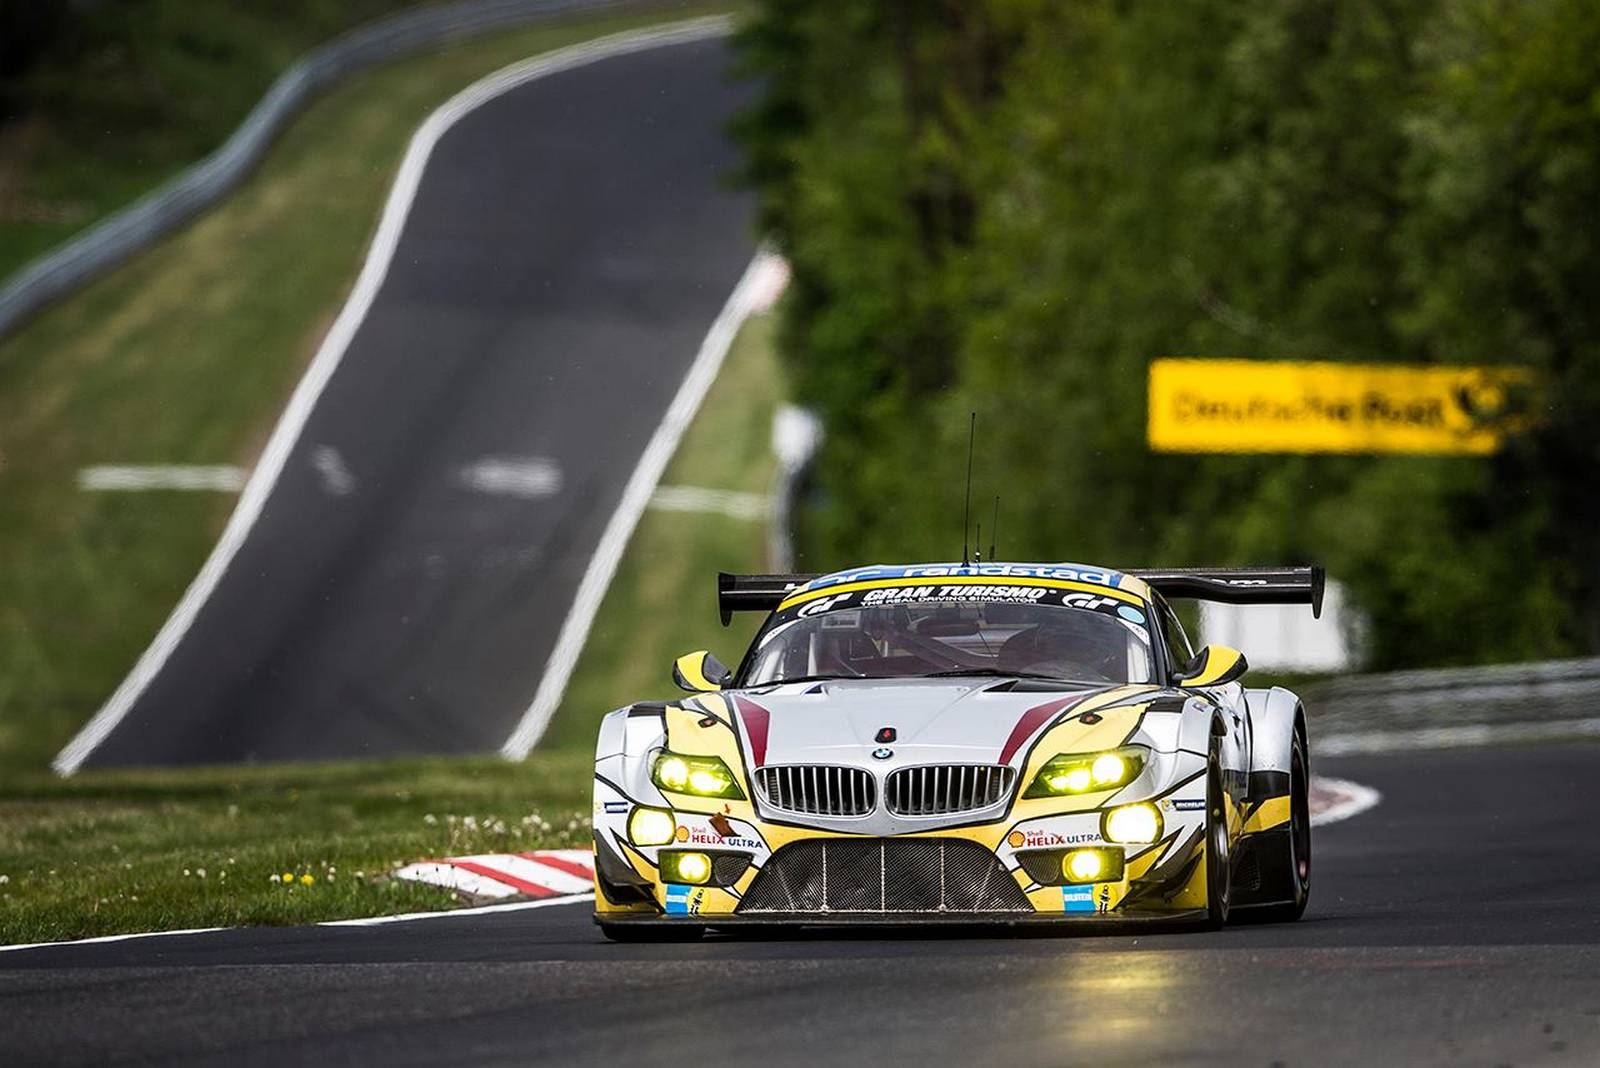 24 hours of nurburgring augusto farfus wins pole for bmw gtspirit. Black Bedroom Furniture Sets. Home Design Ideas